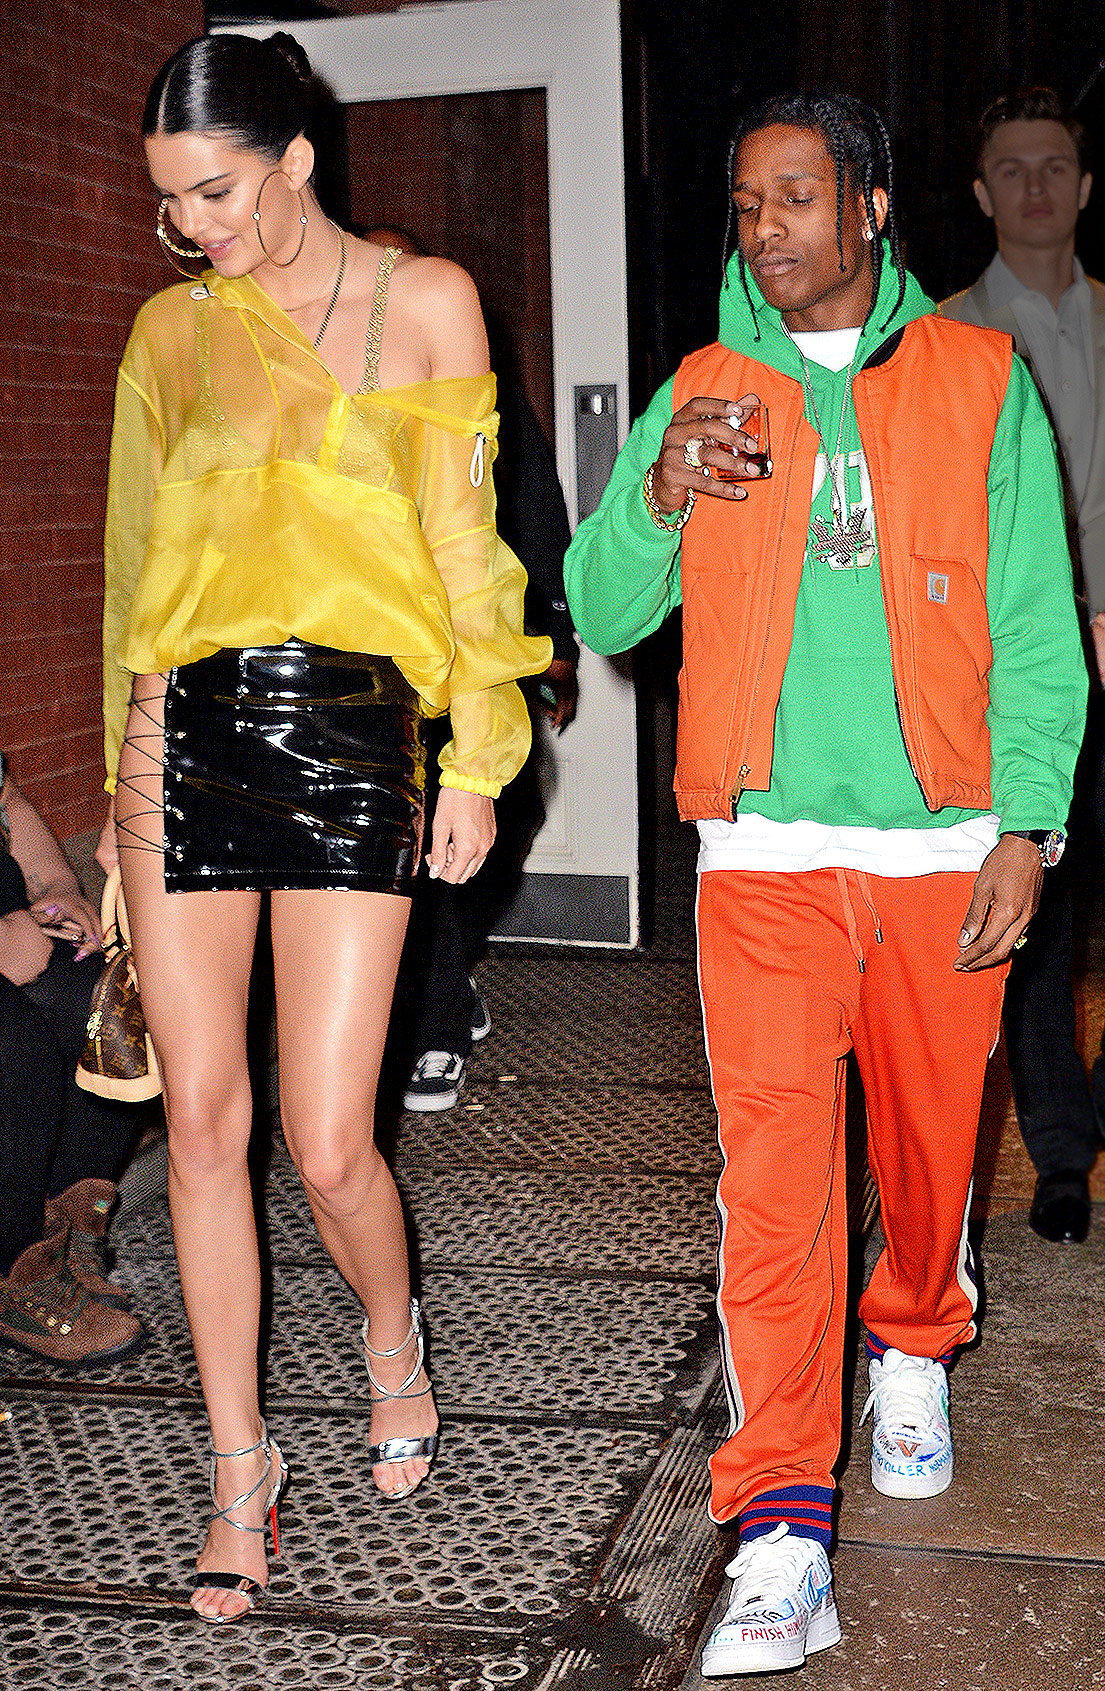 Kendall Jenner and ASAP Rocky leave the Mercer Hotel in New York City